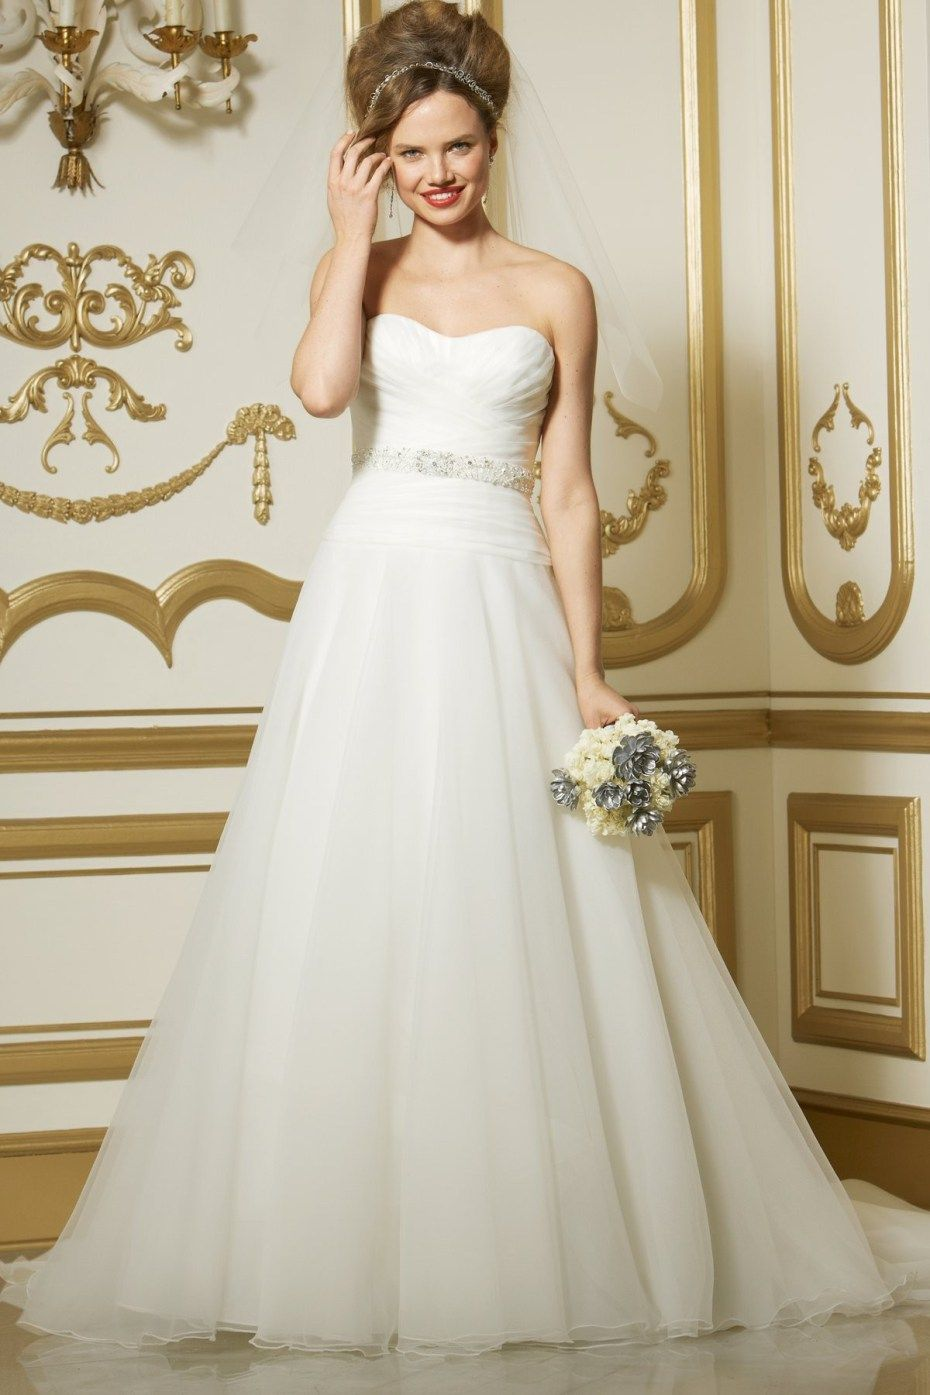 Aline wedding dress  Why Choose A Line Wedding Dresses  Weddings  Pinterest  Wedding